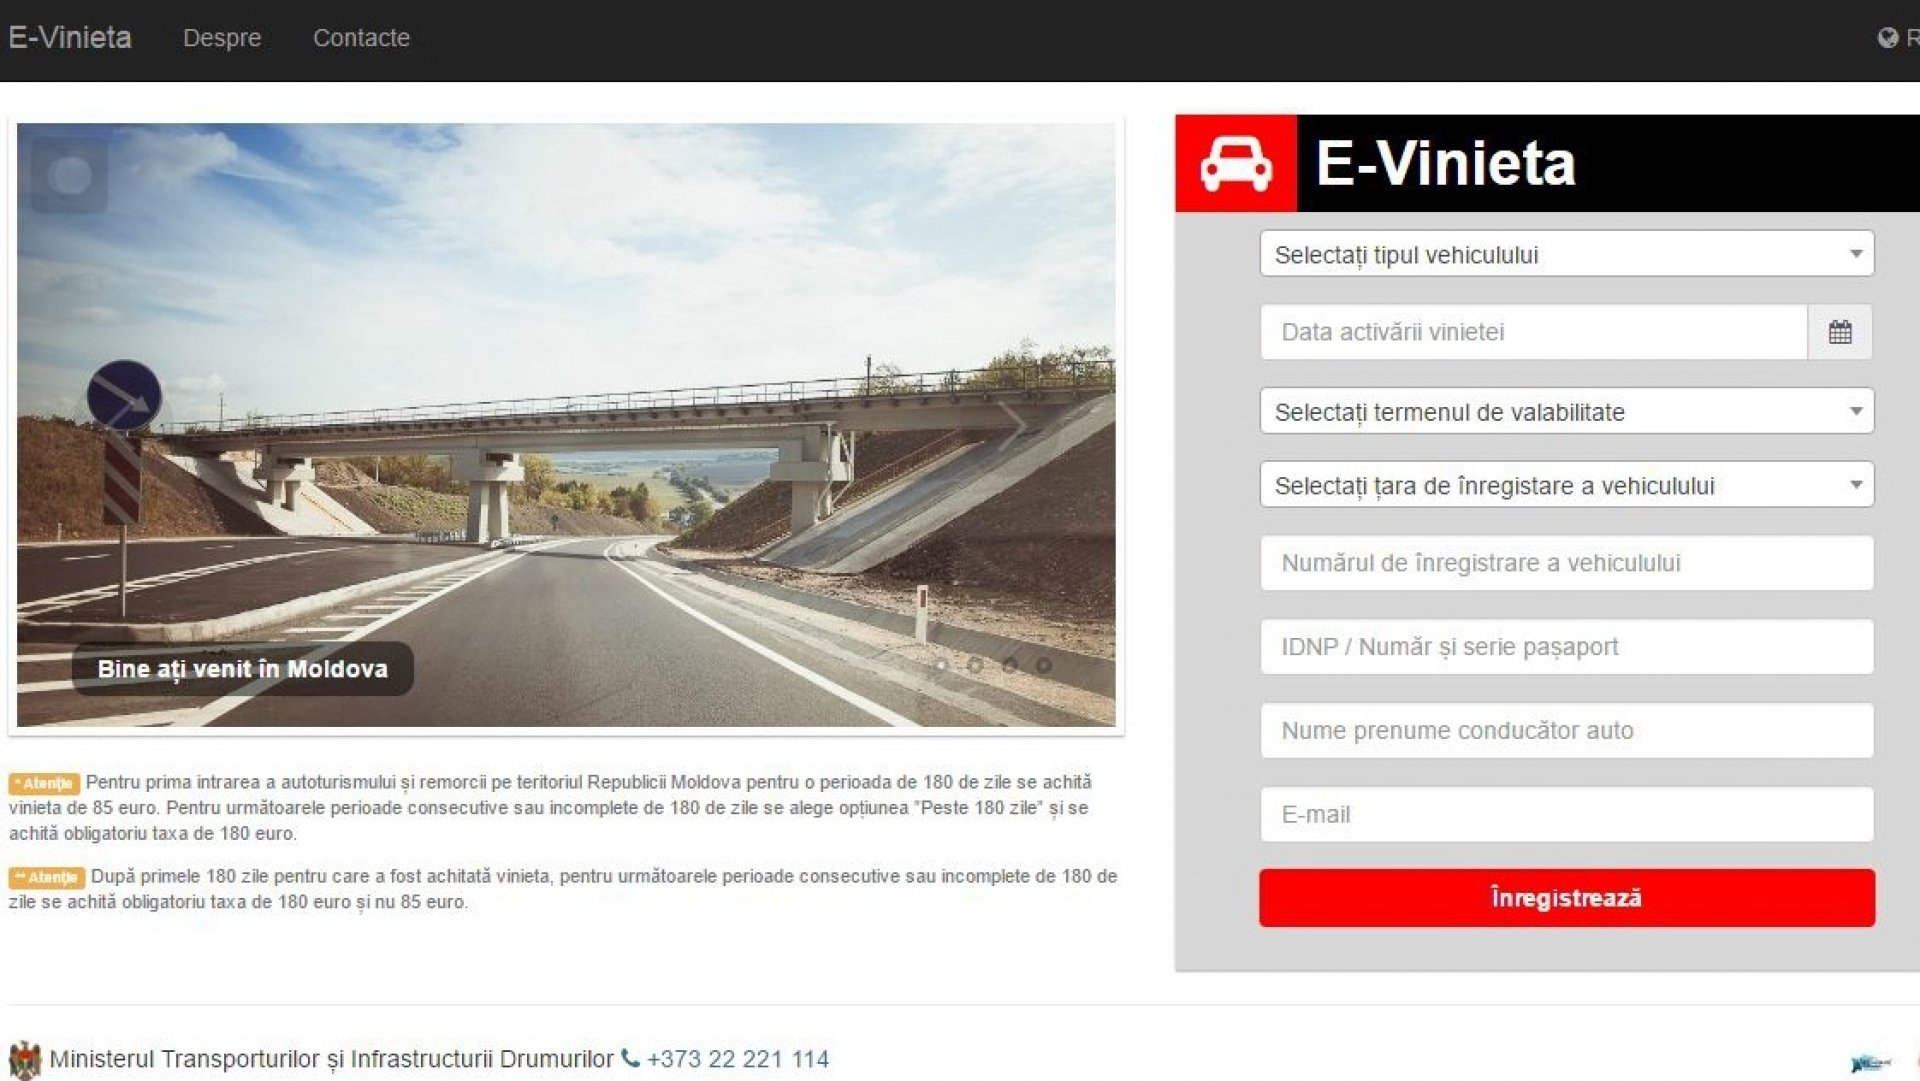 Drivers to purchase road toll ONLINE | PUBLIKA  MD - AICI SUNT ȘTIRILE